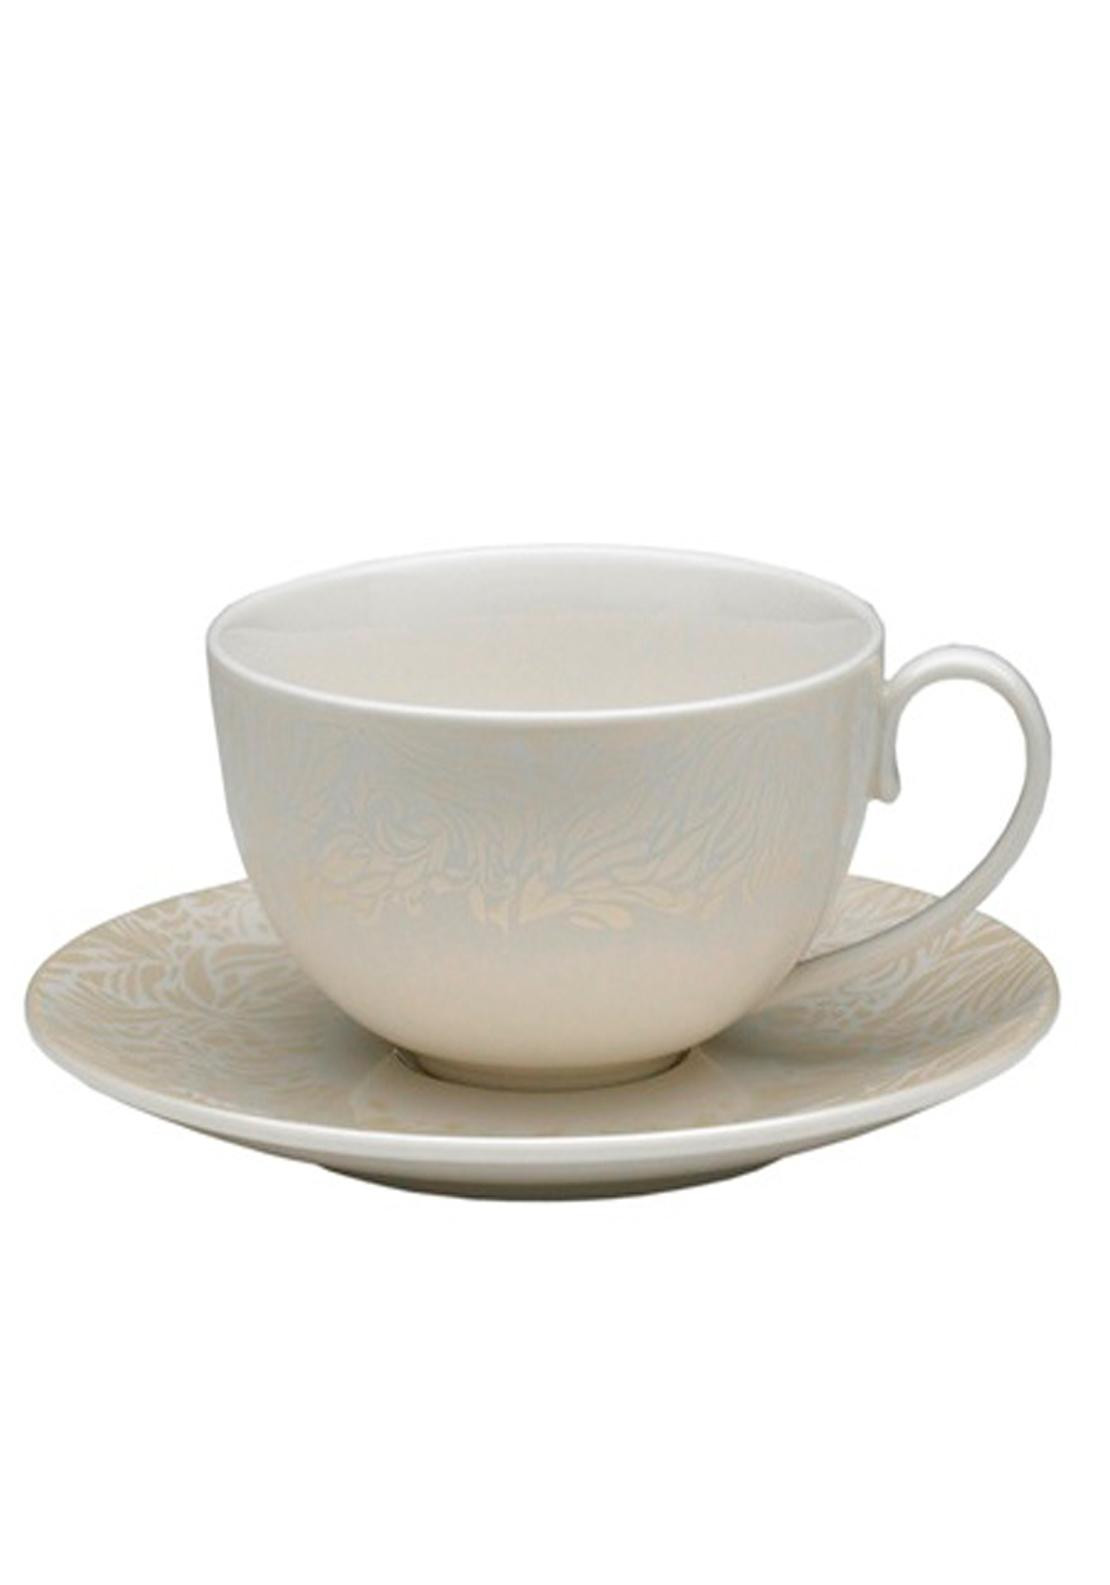 Denby Monsoon Lucille Gold Tea Saucer